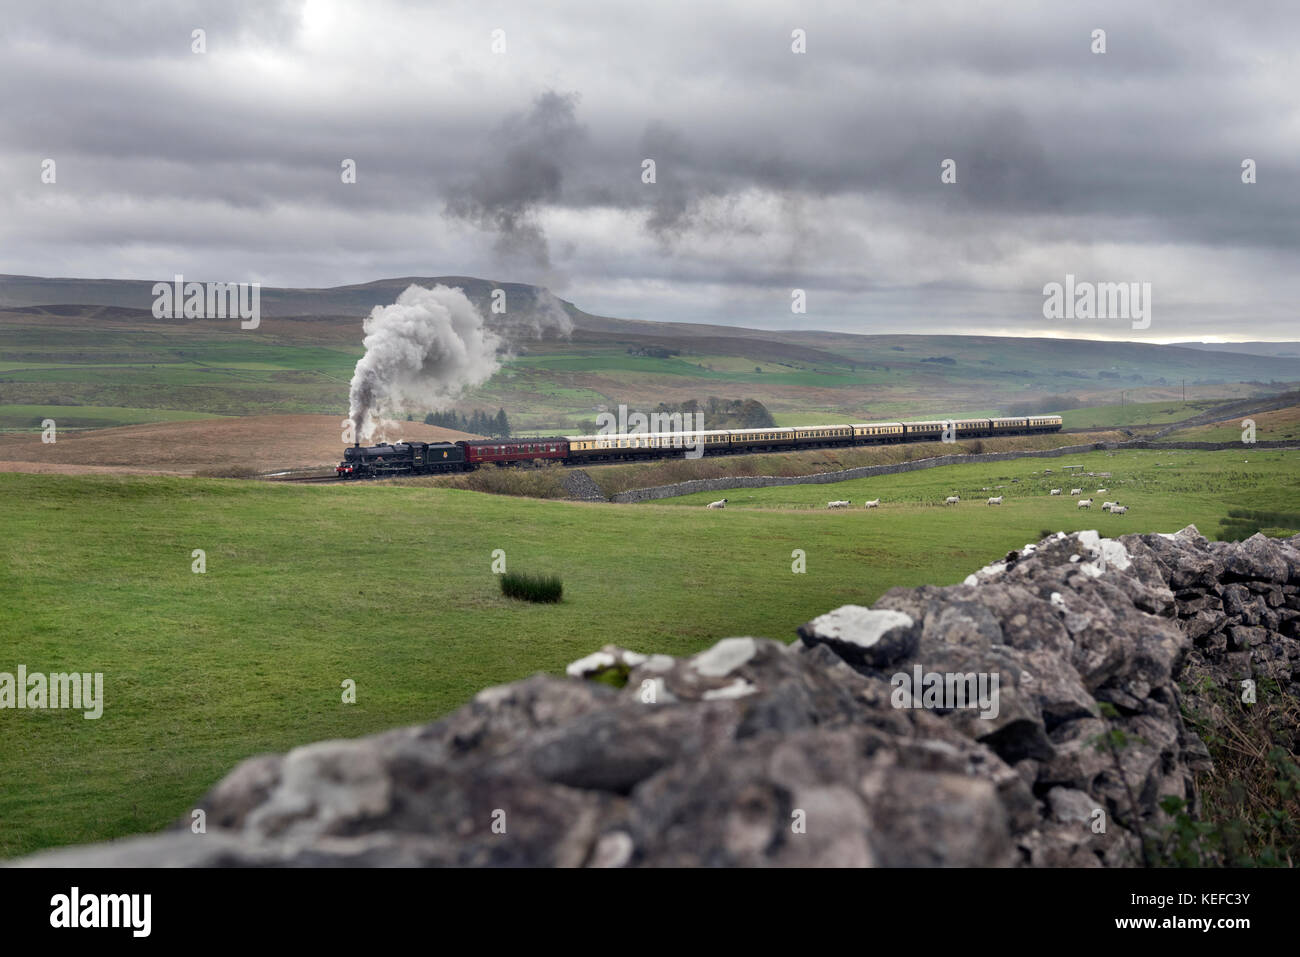 Ribblesdale, UK. 21st Oct, 2017. Steam special on the famous Settle - Carlisle railway line. Under a cloudy sky - Stock Image